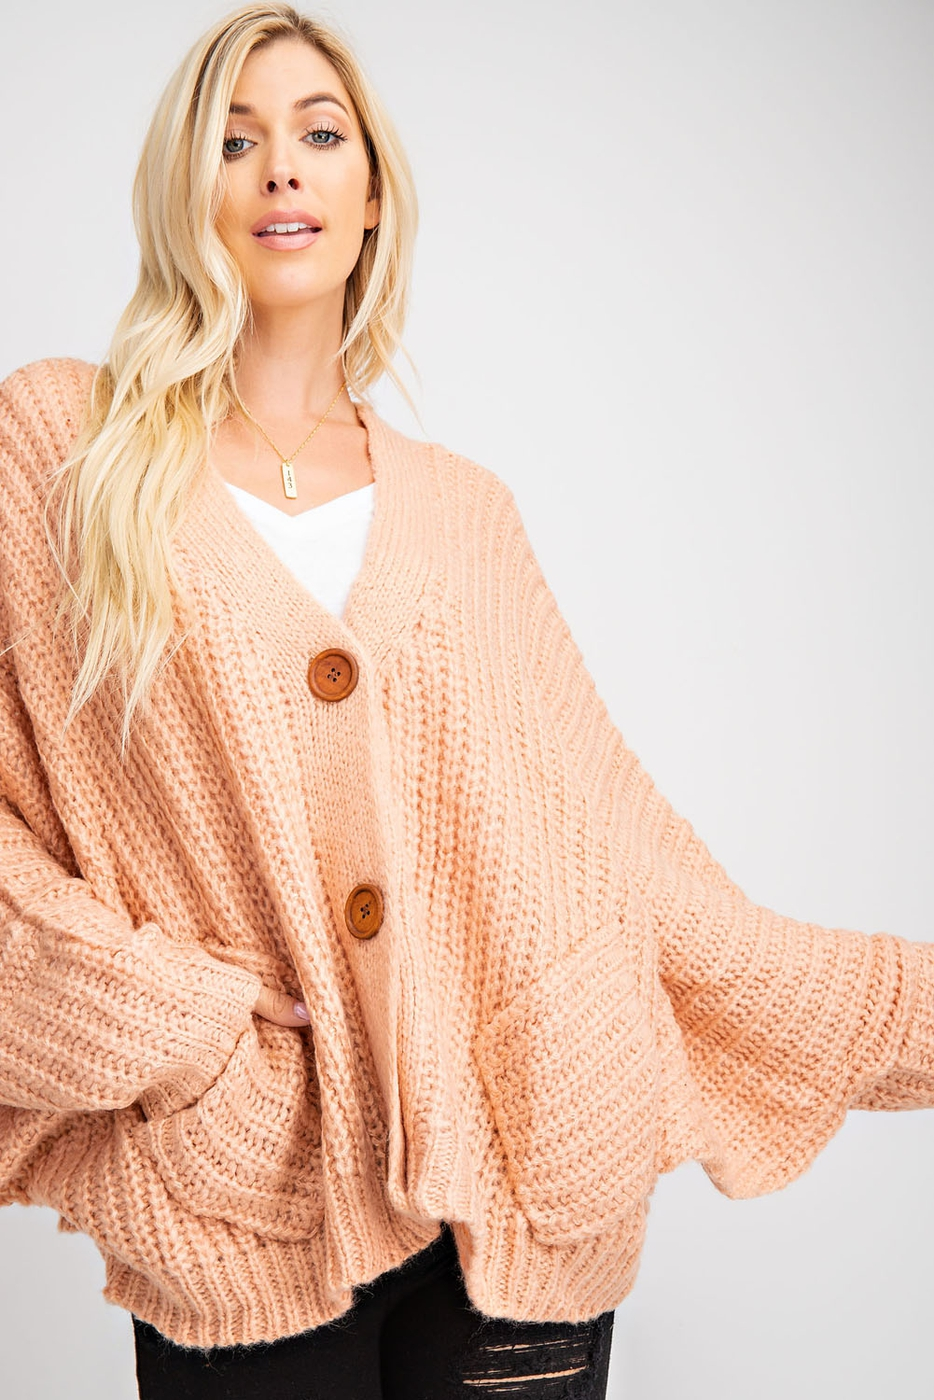 V SHAPE BACK NECK POINT CARDIGAN - orangeshine.com